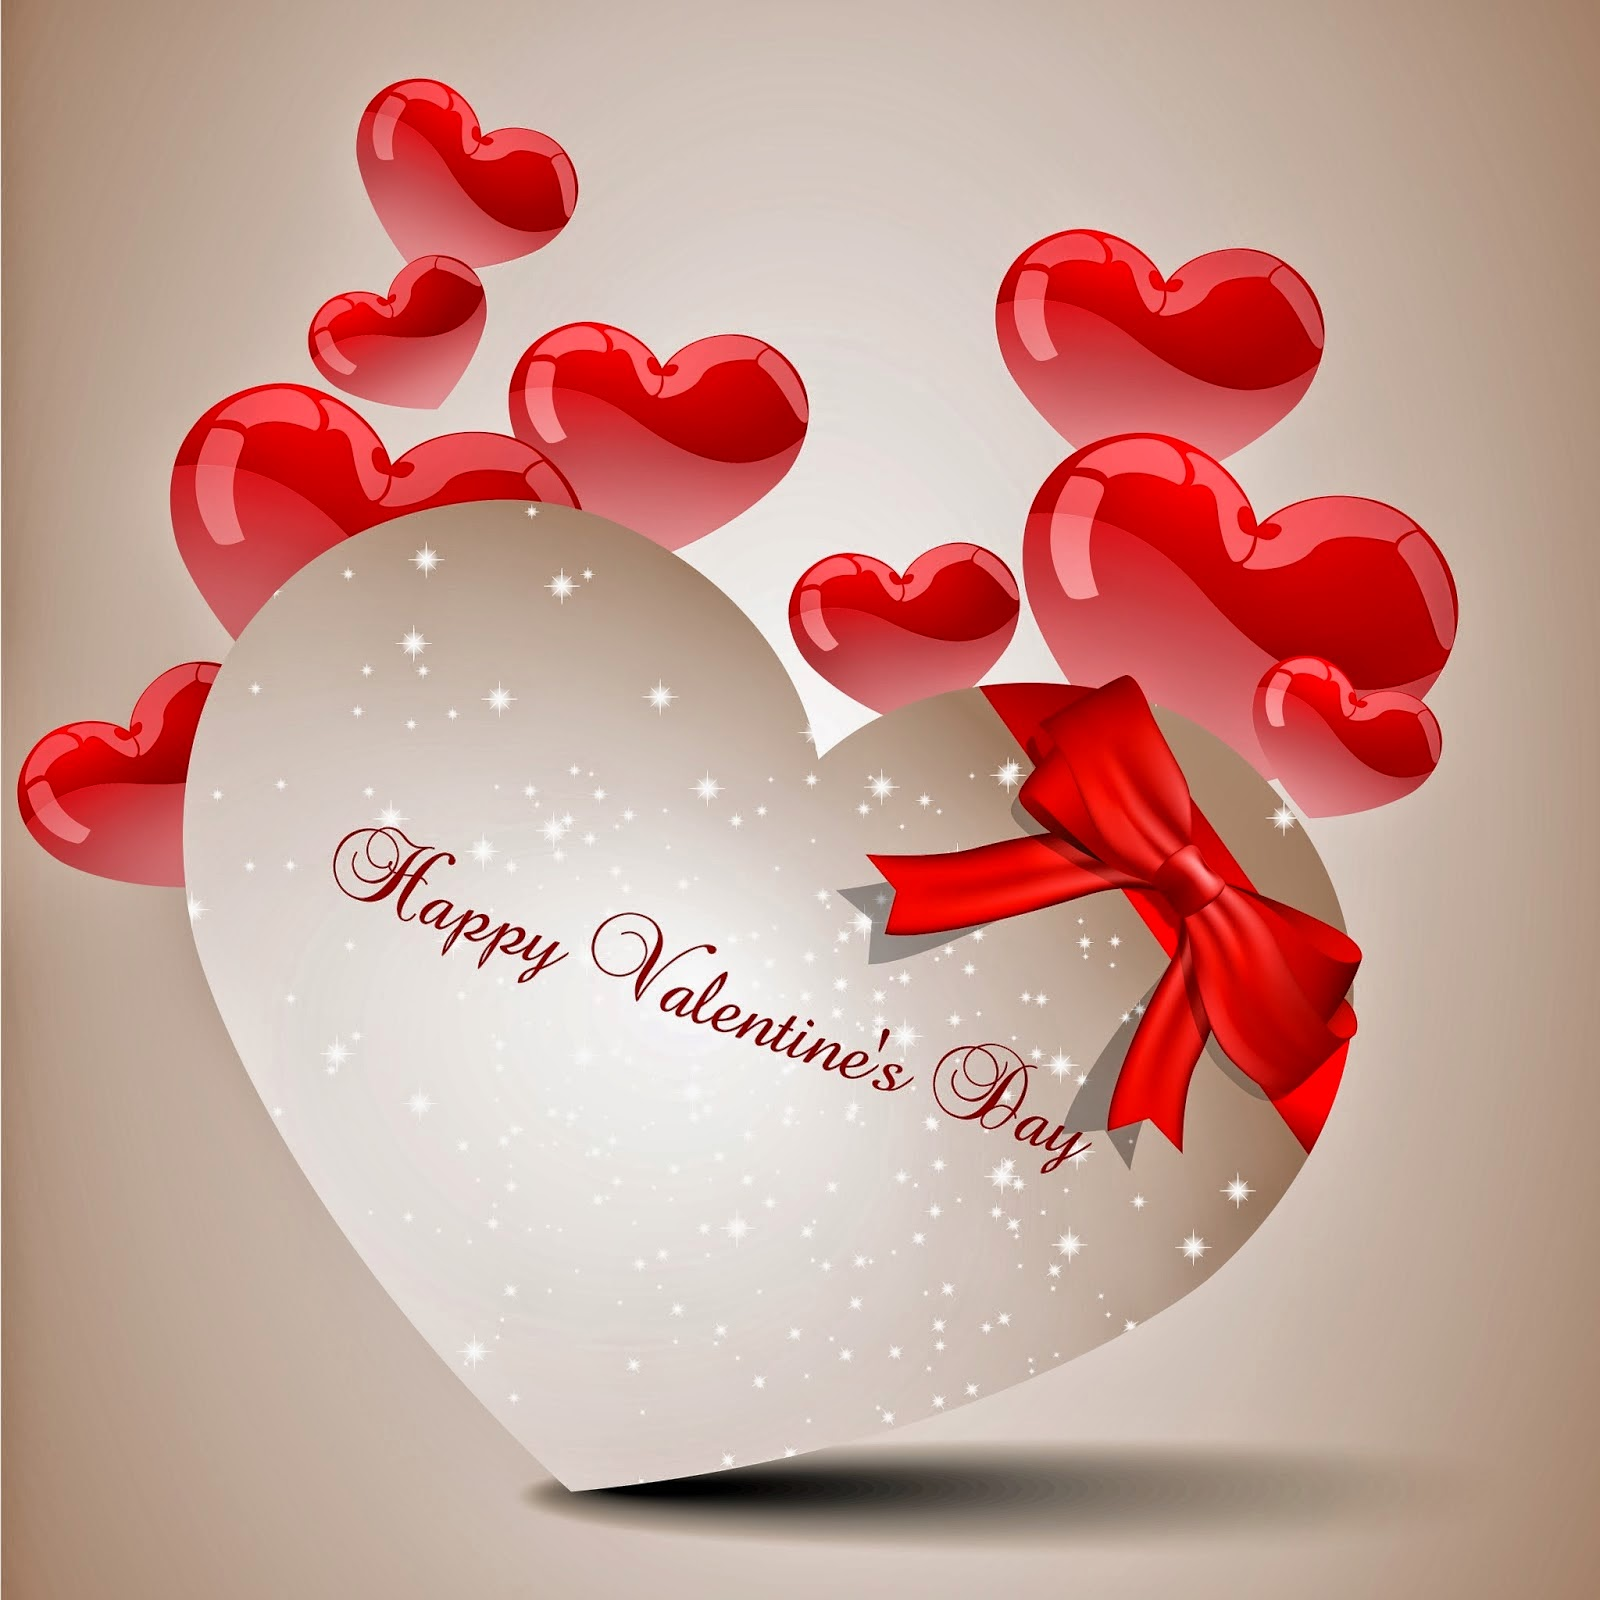 Valentines day images for whatsapp dp profile wallpapers free download valentines day images for whatsapp dp profile m4hsunfo